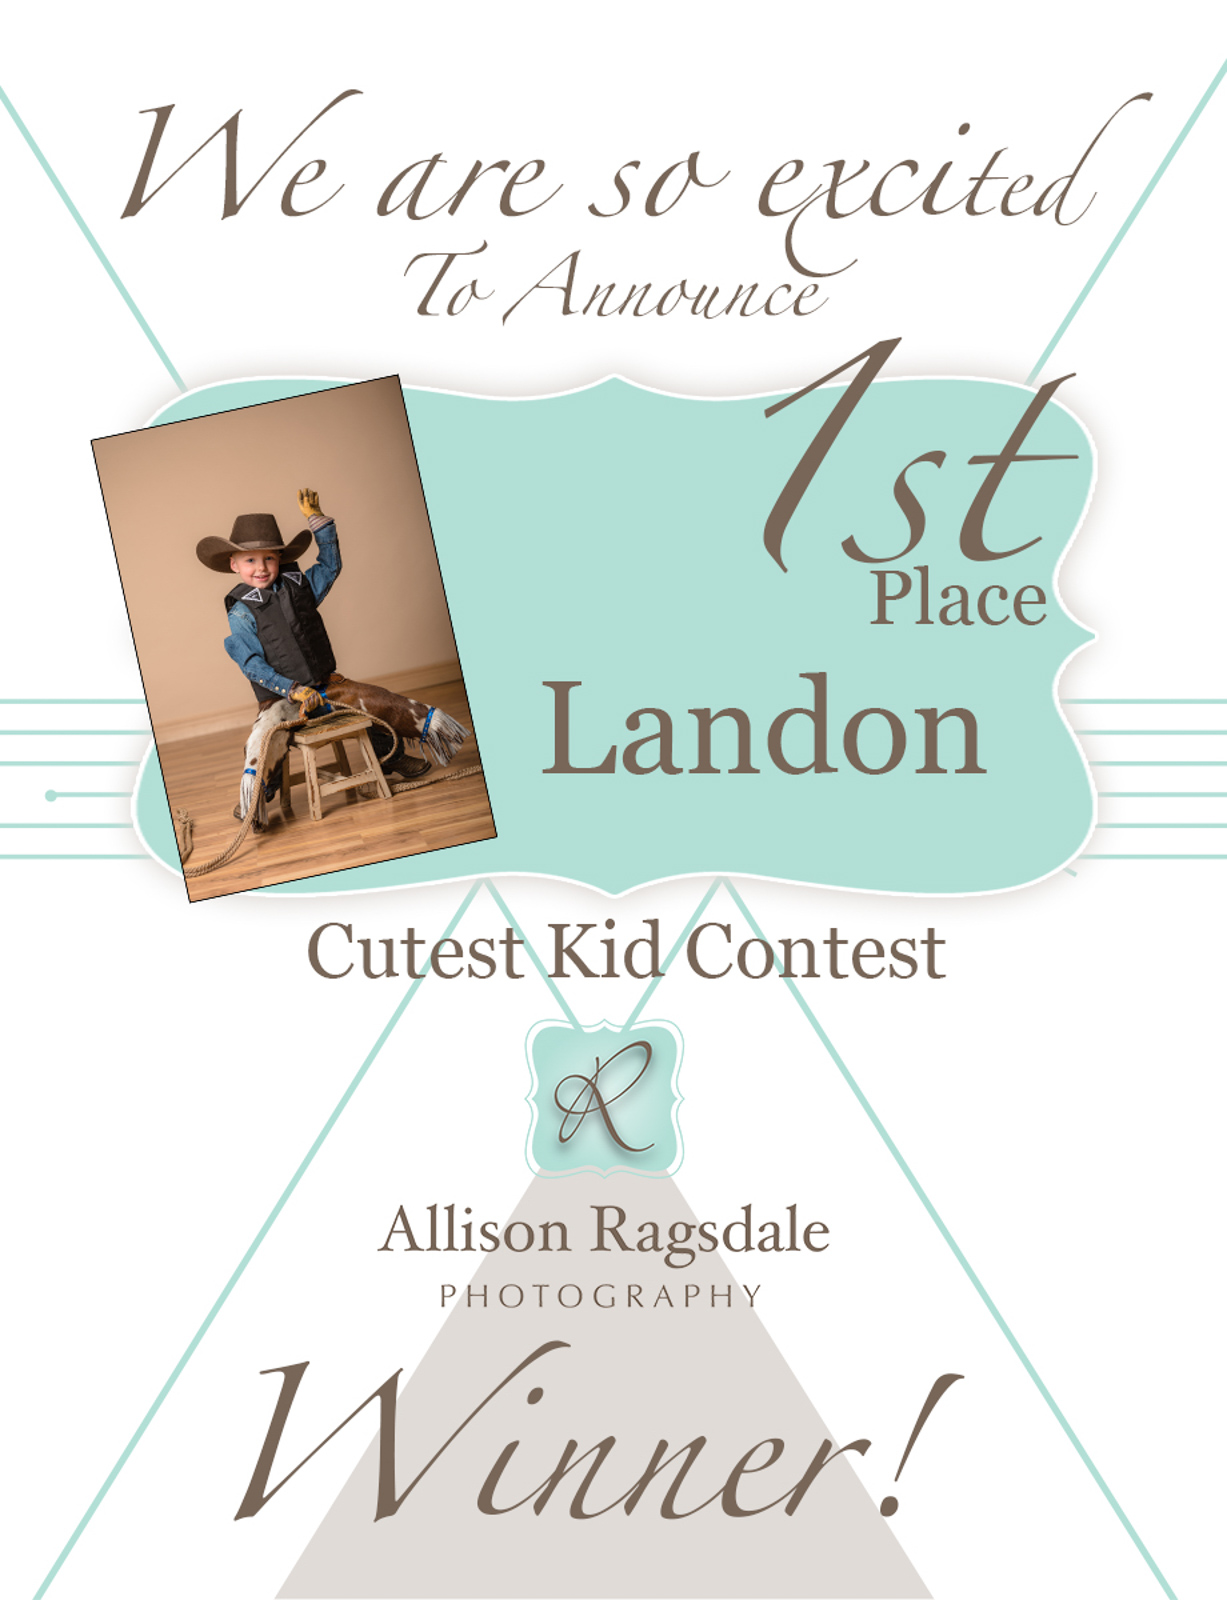 Cutest Kids Contest Winners 2021!